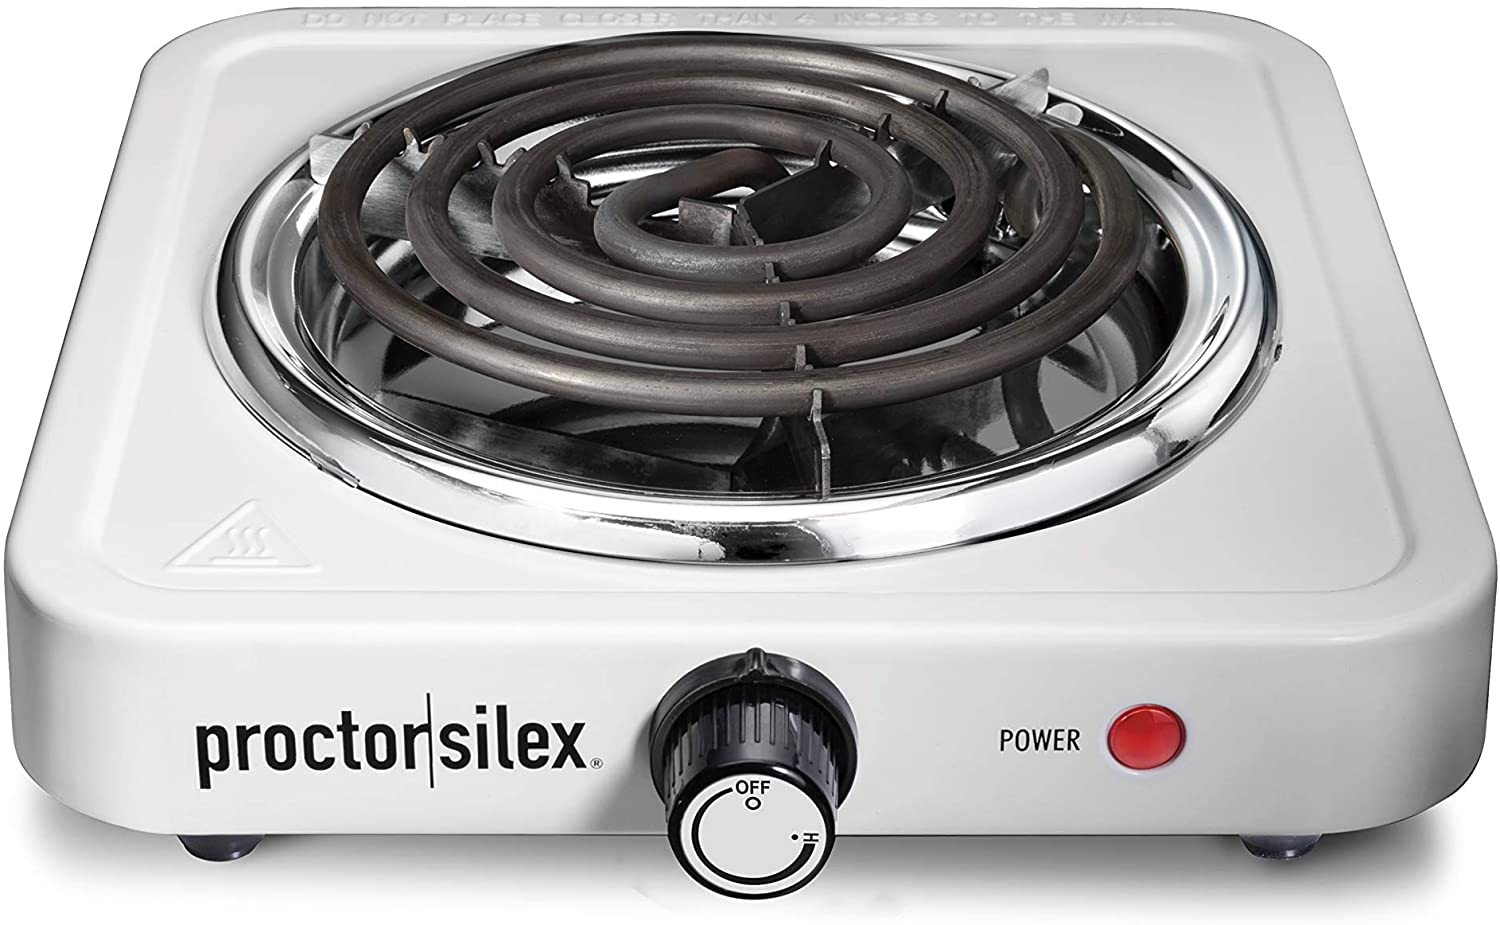 Proctor Silex Electric Single Burner Cooktop, Compact and Portable, Adjustable Temperature Hot Plate, 1200 Watts, White & Stainless (34106)